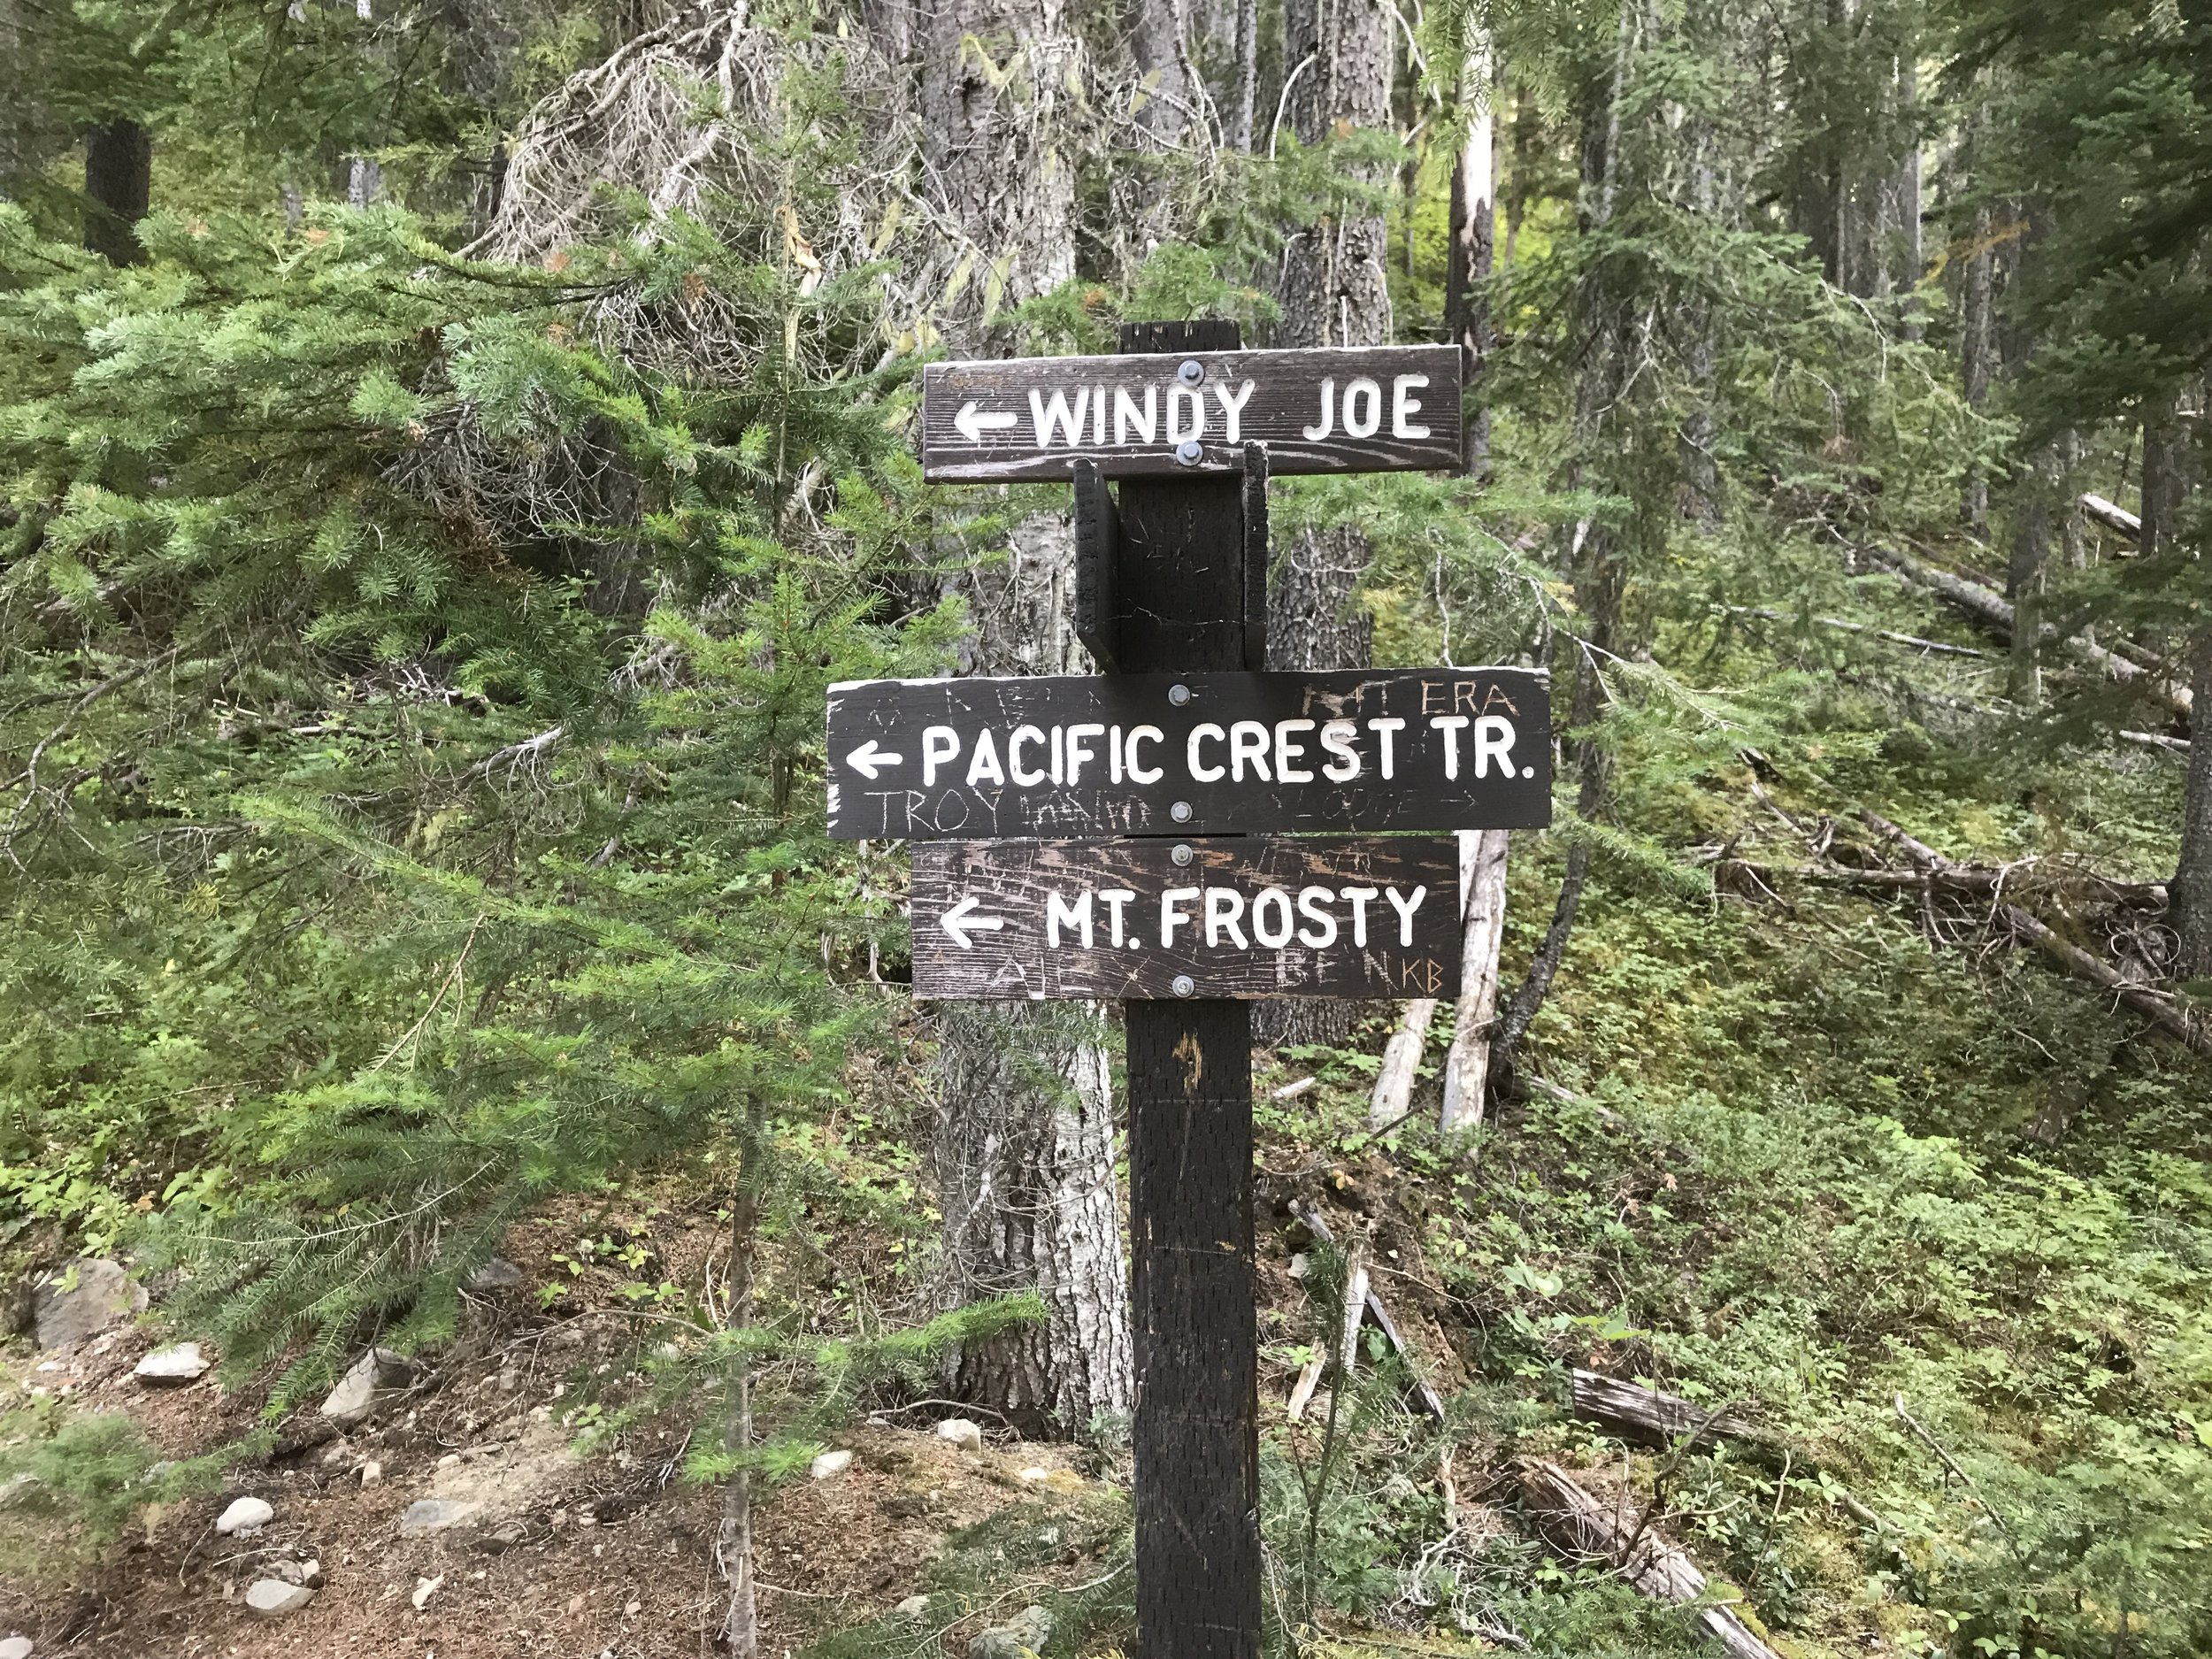 I camped in Manning Park one night and hiked a couple miles from the trailhead towards the US border.